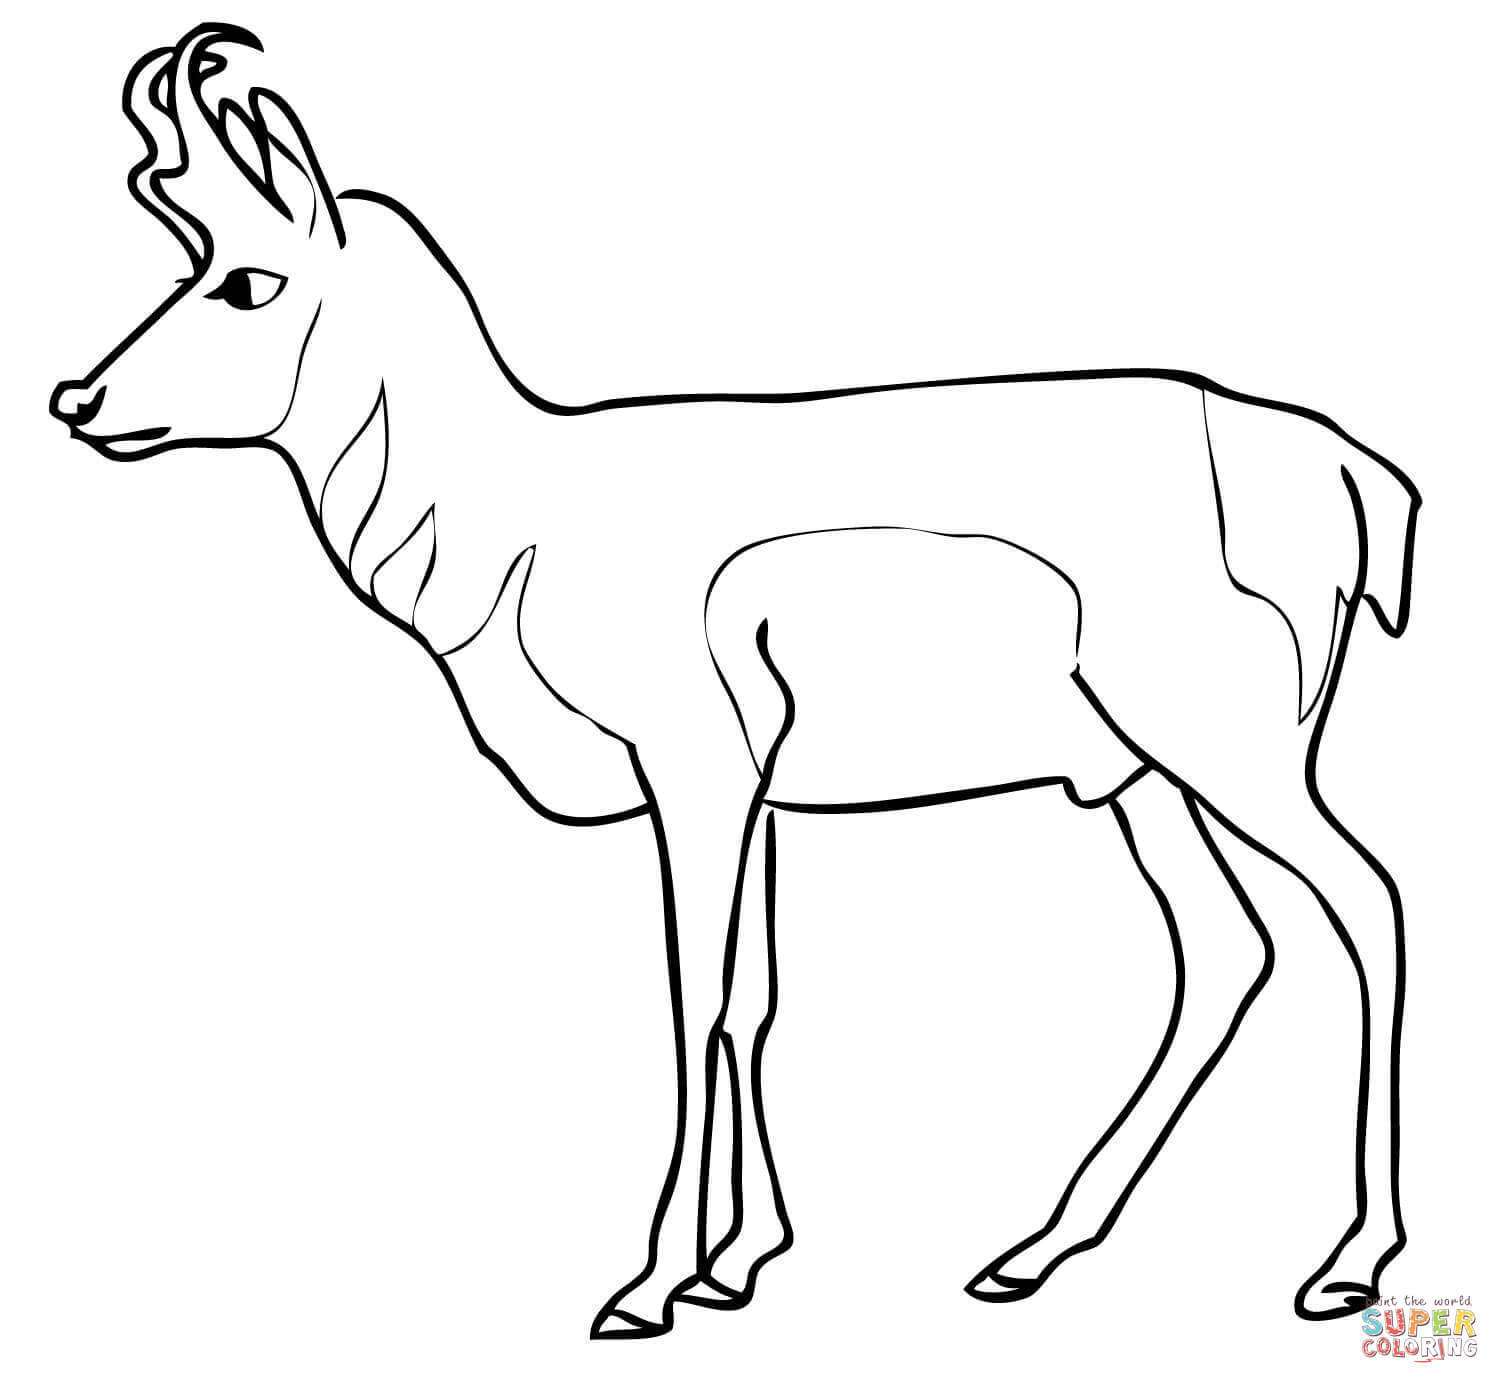 Pronghorn antelope clipart